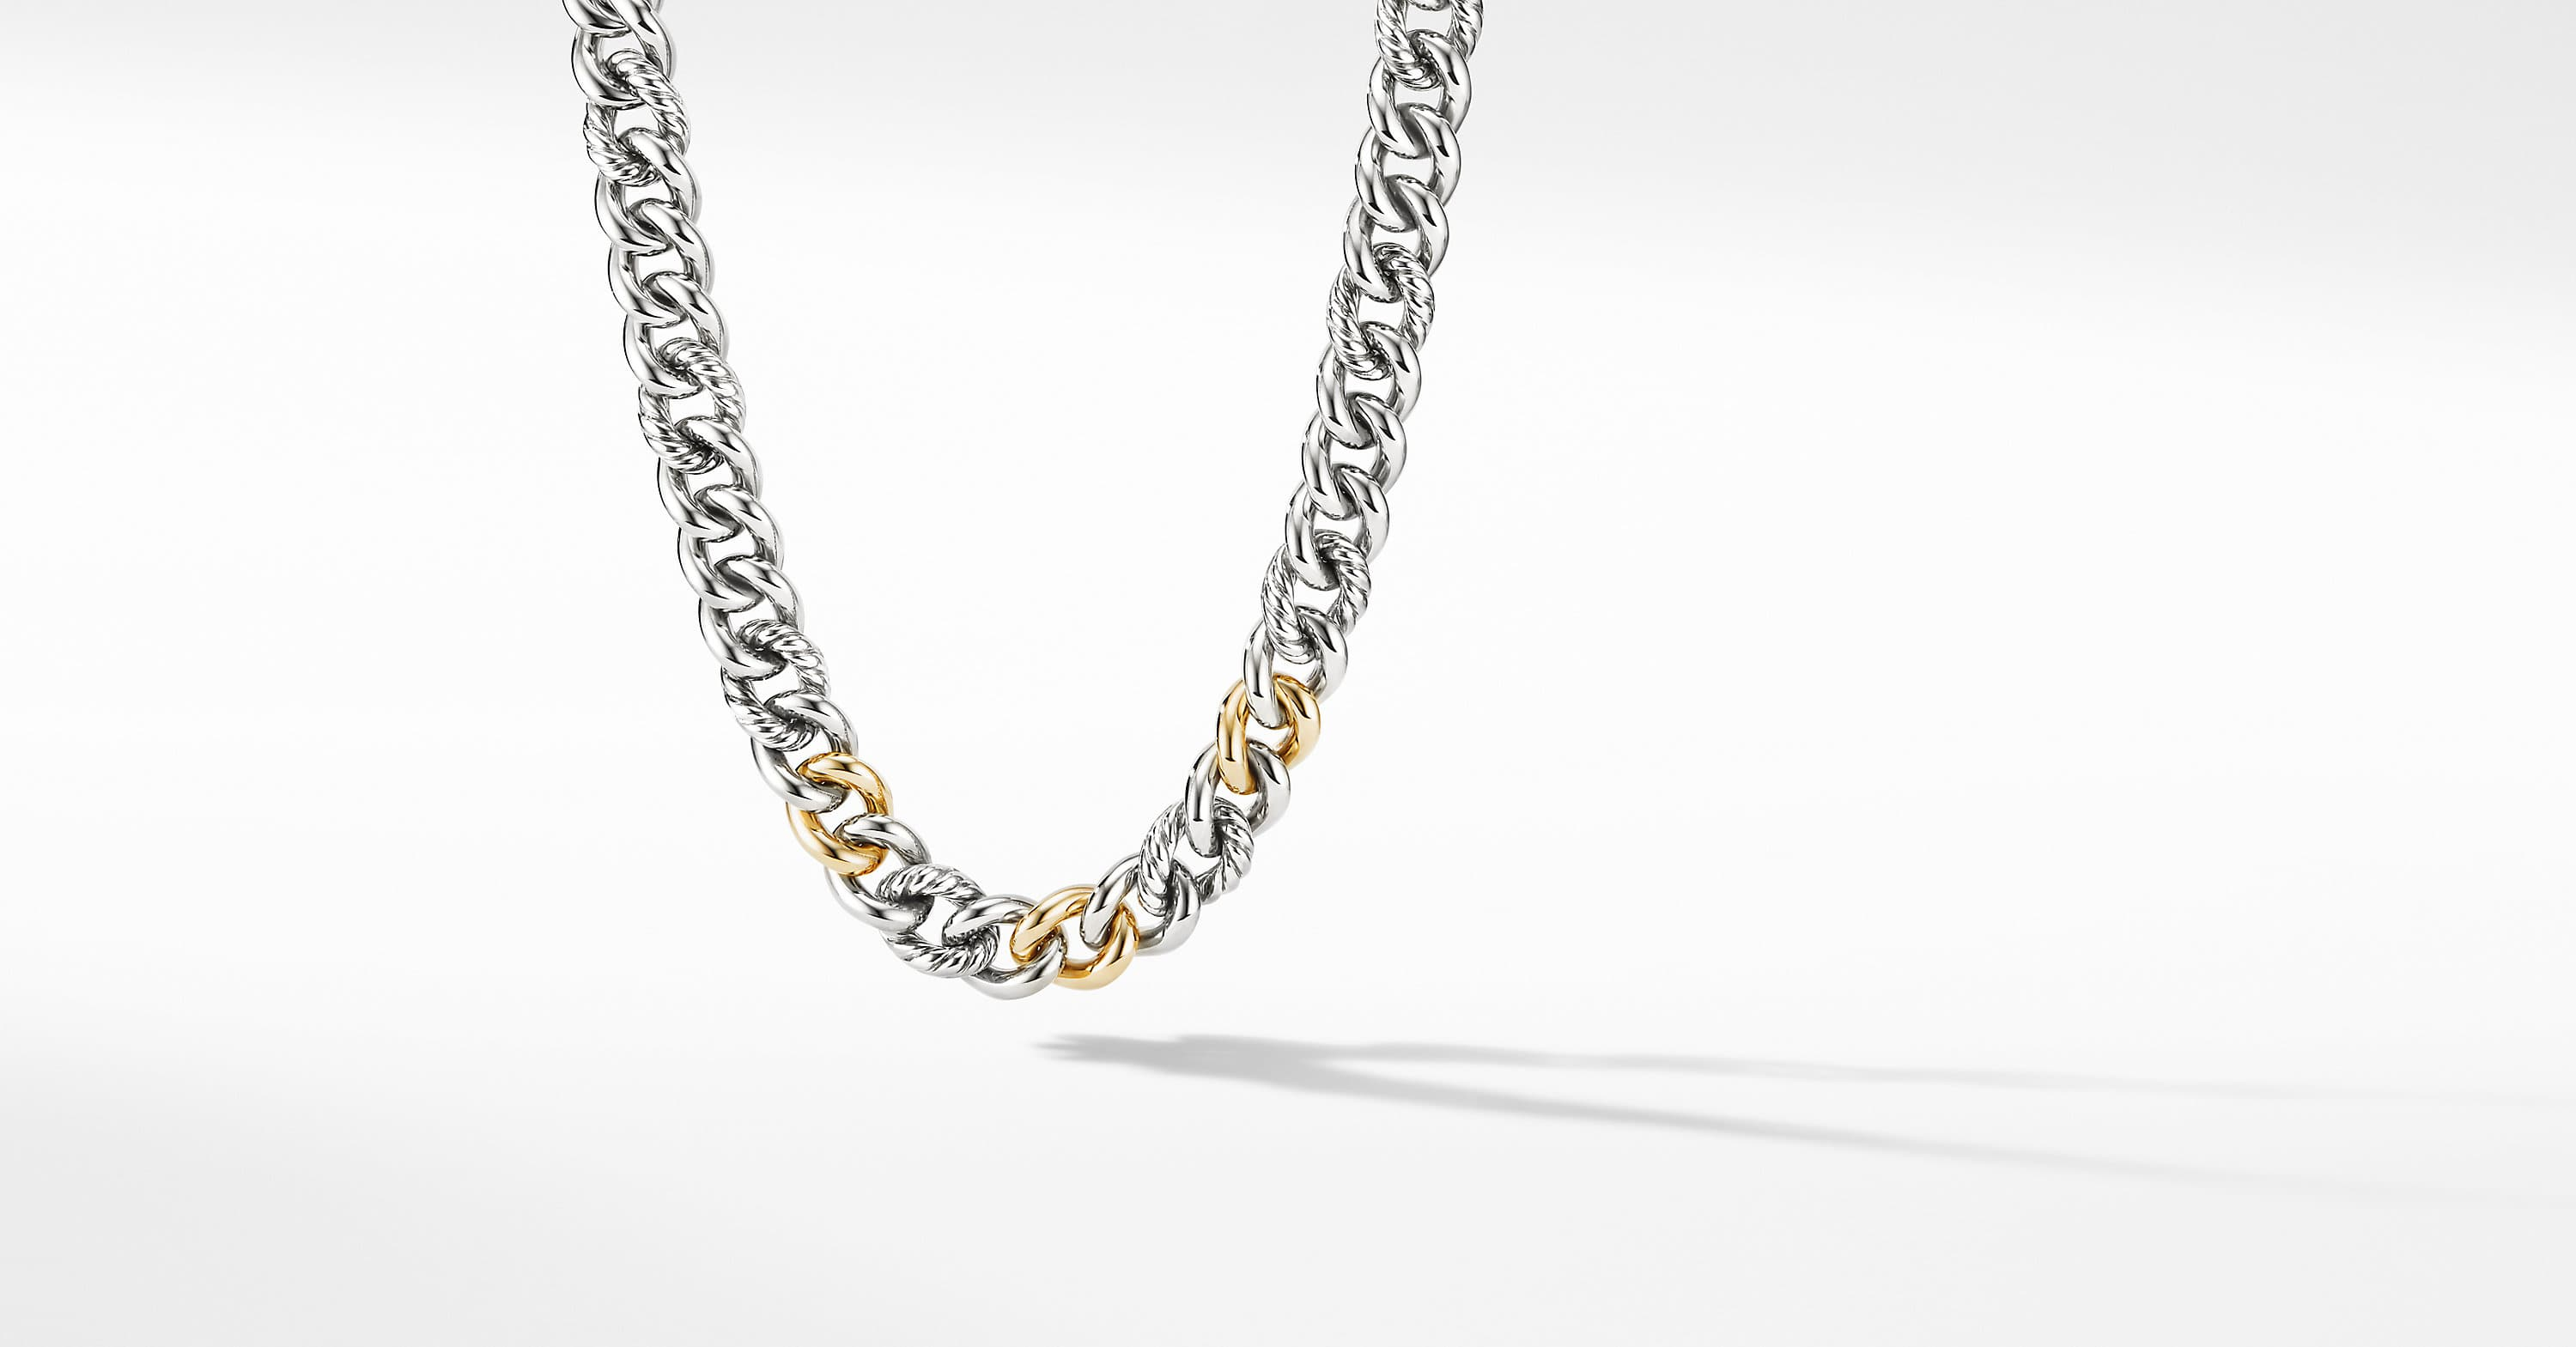 Curb Chain Necklace with 14K Yellow Gold, 13.5mm